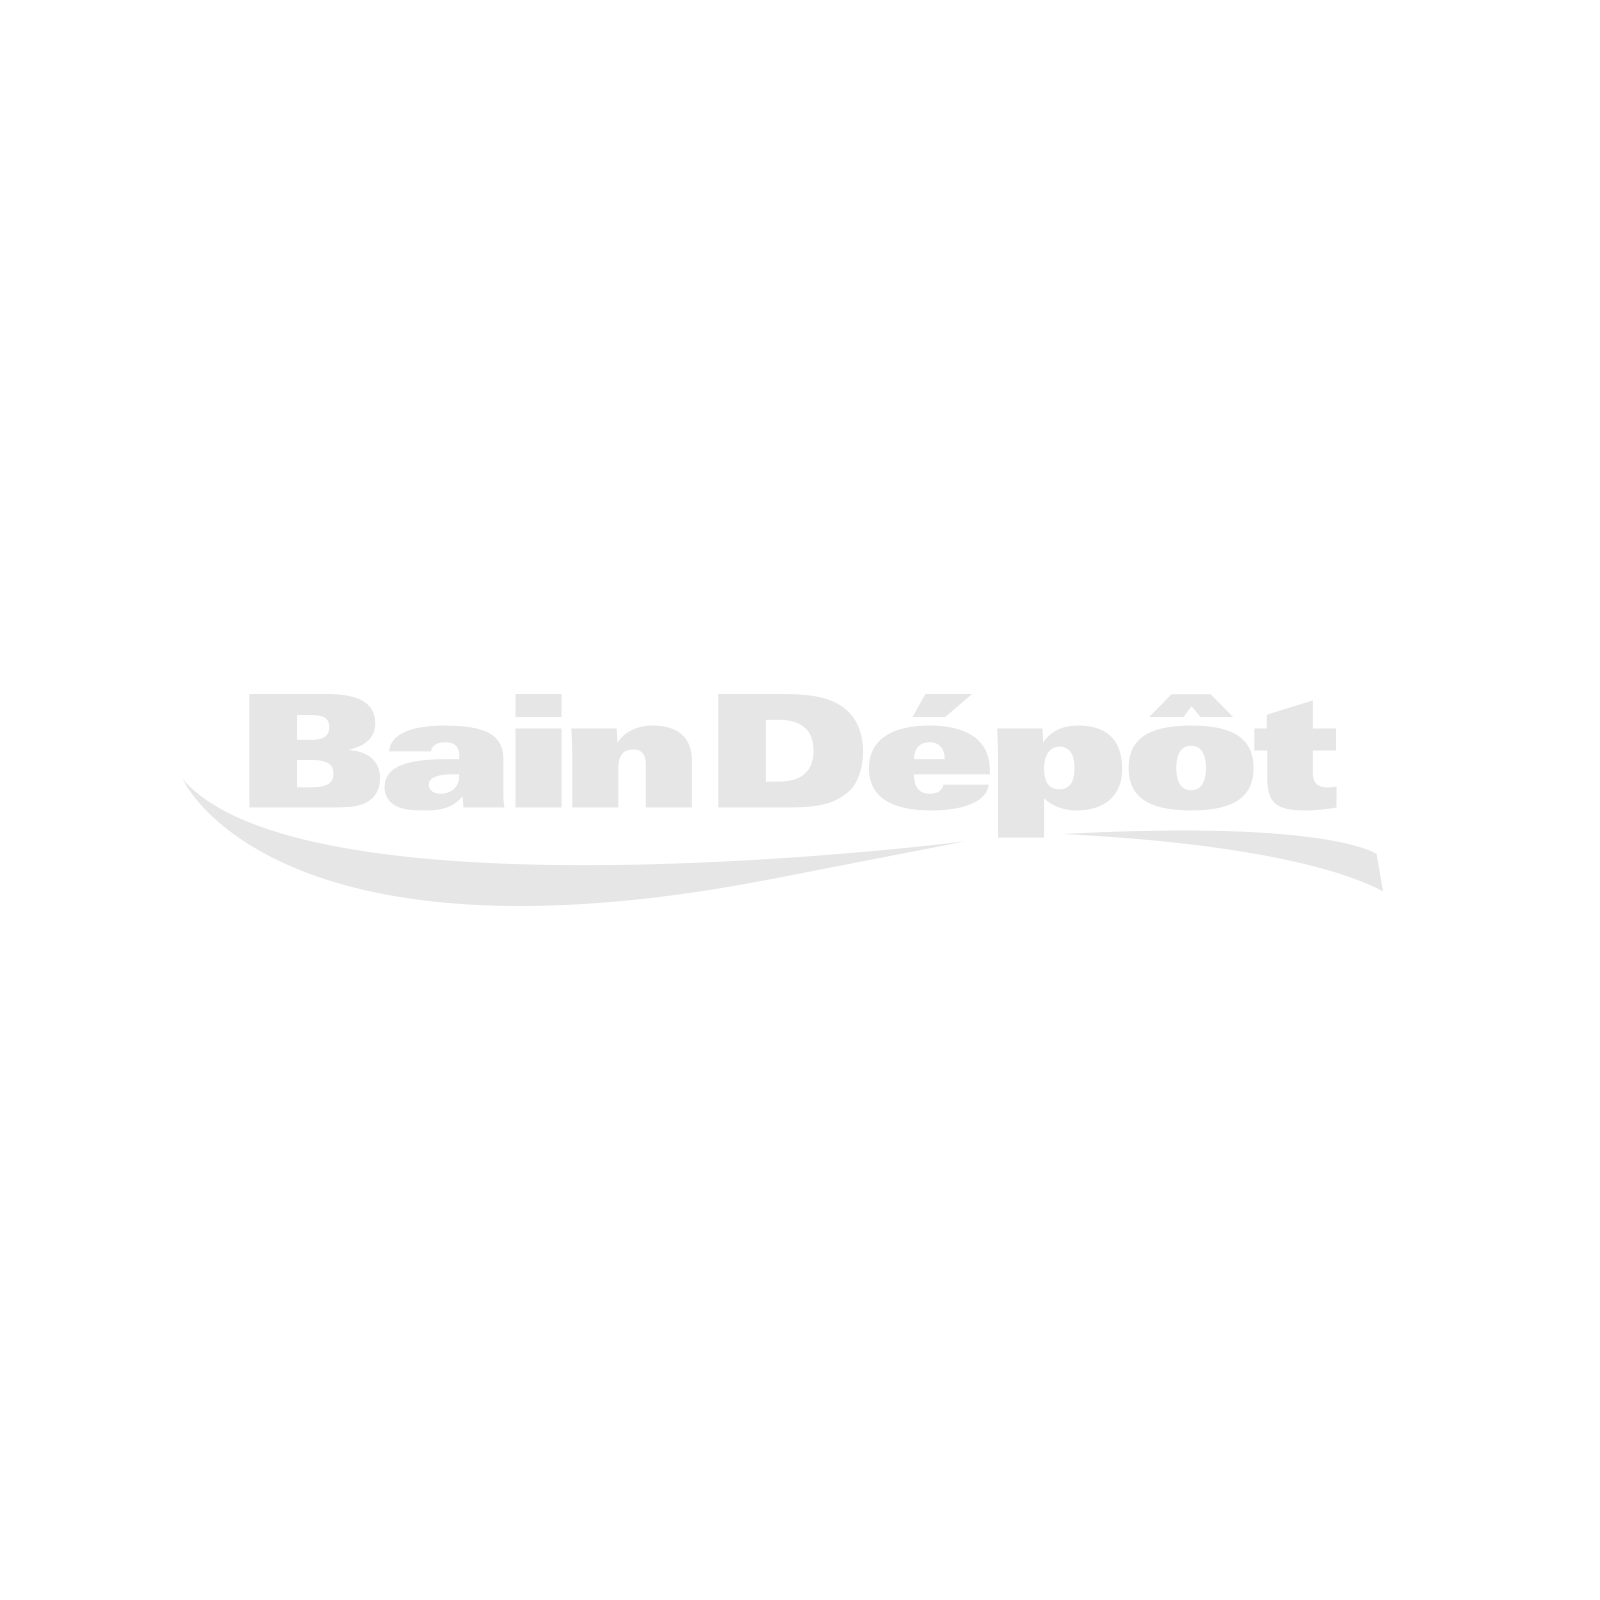 "24"" x 34.5"" Three-drawer base kitchen cabinet"